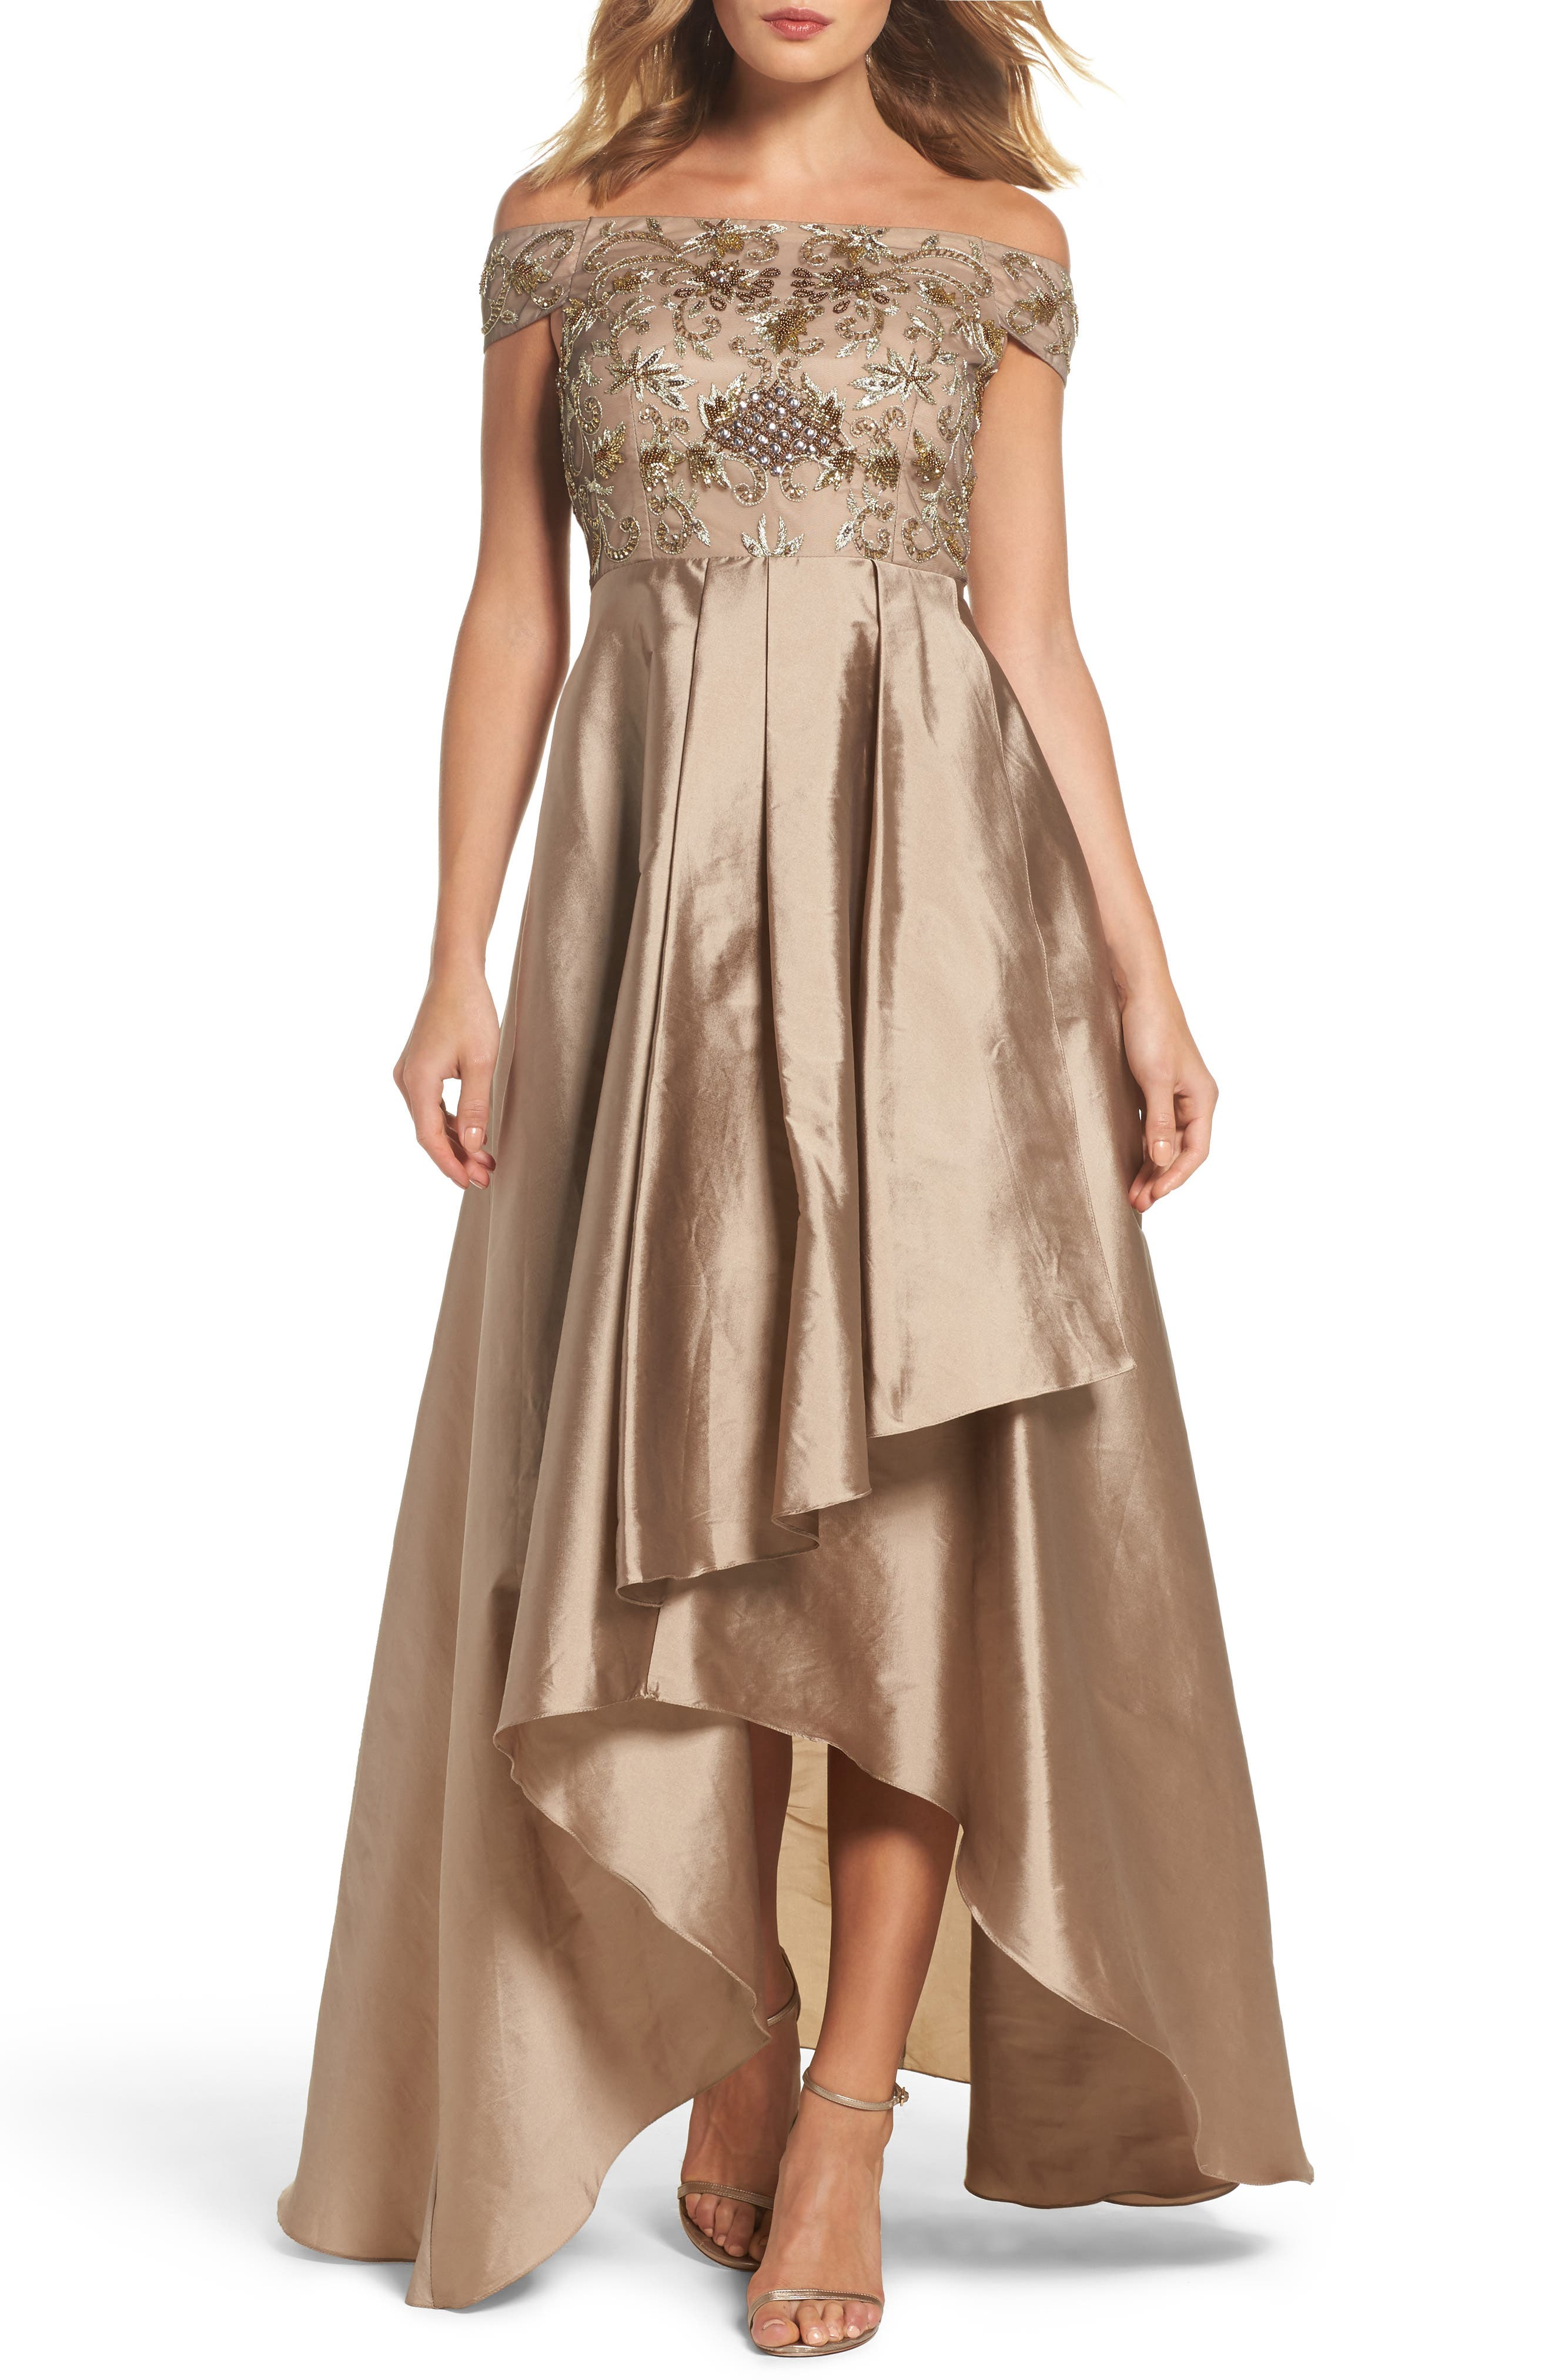 Alternate Image 1 Selected - Adrianna Papell Embellished High/Low Off the Shoulder Dress